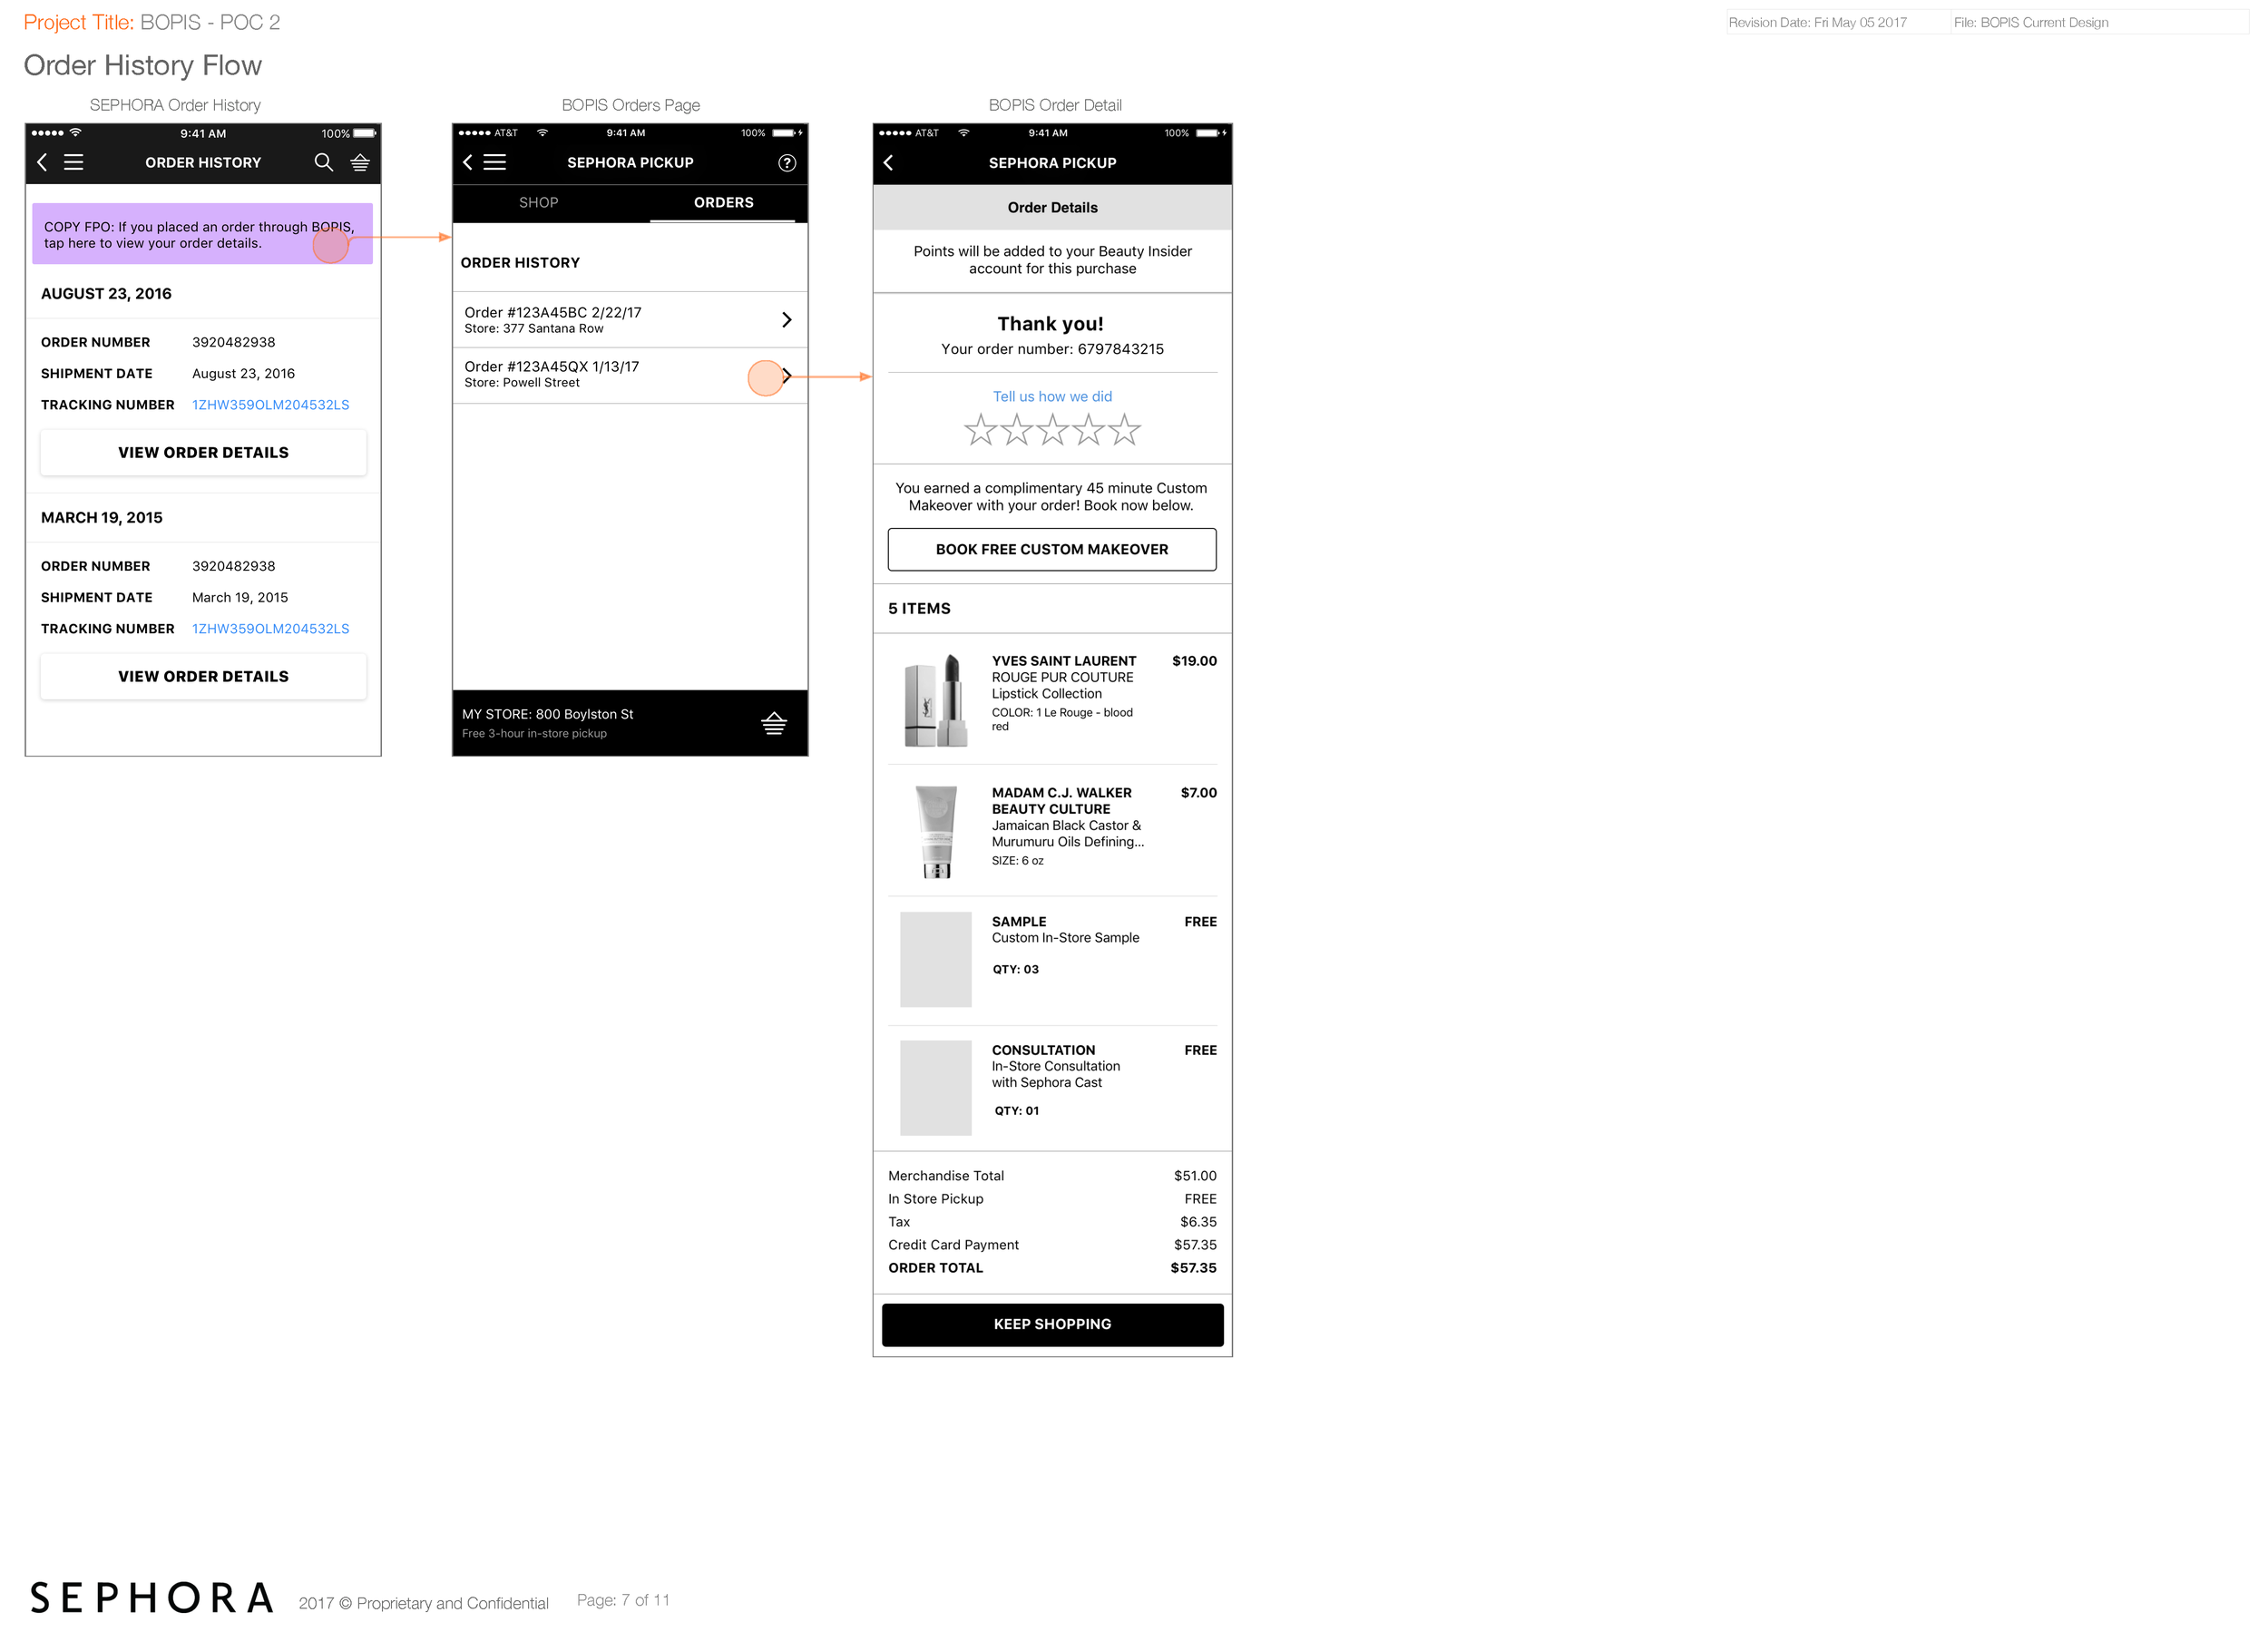 BOPIS Current Design 5.5.17_Page_07.png